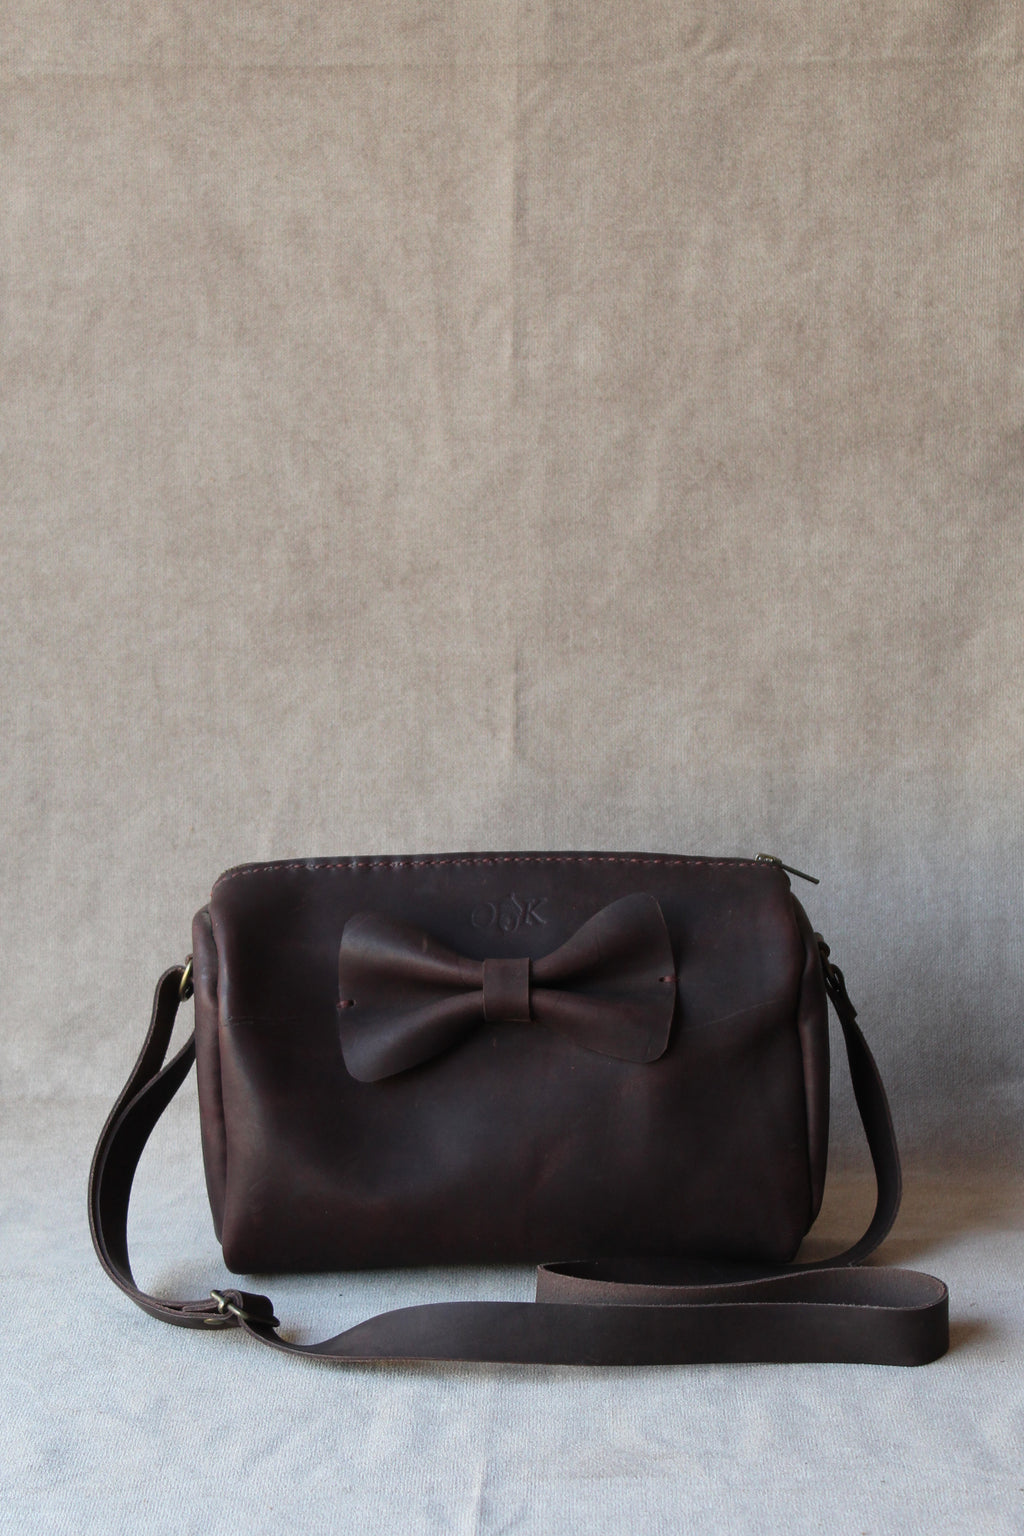 bow box satchel